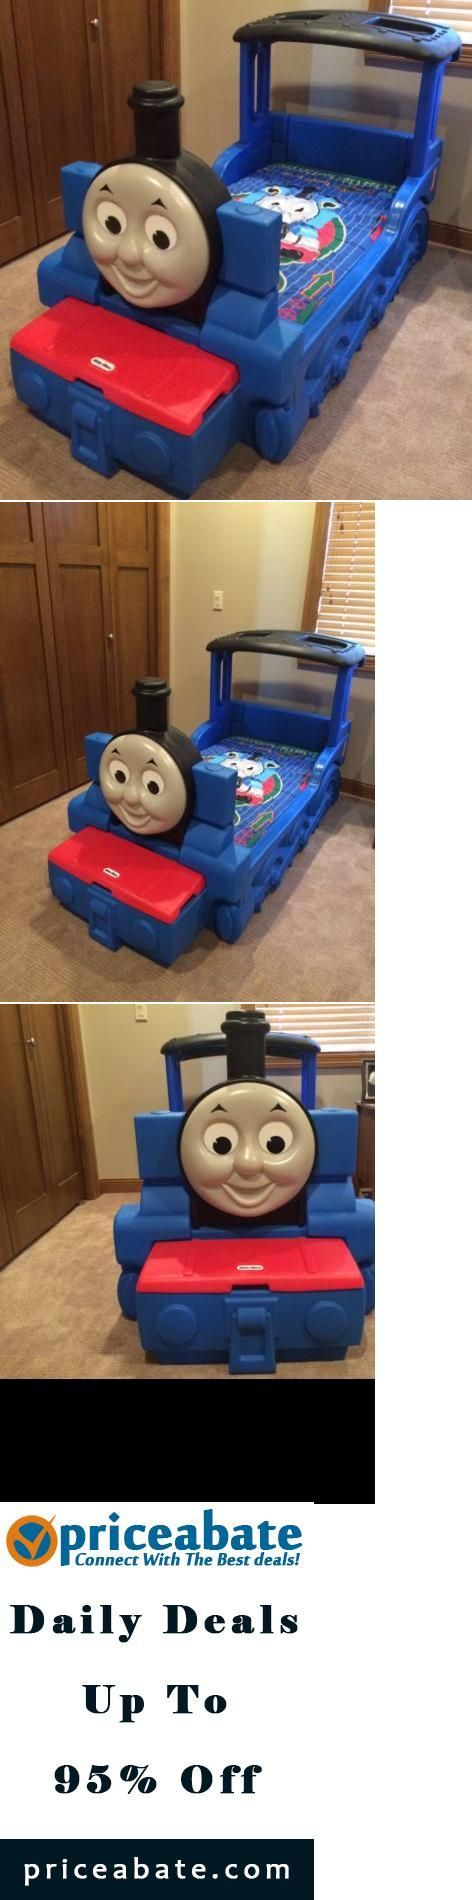 Little tikes thomas the train bed -  Priceabatedeals Thomas The Train Little Tikes Toddler Bed Crib Matress And Comforter Included